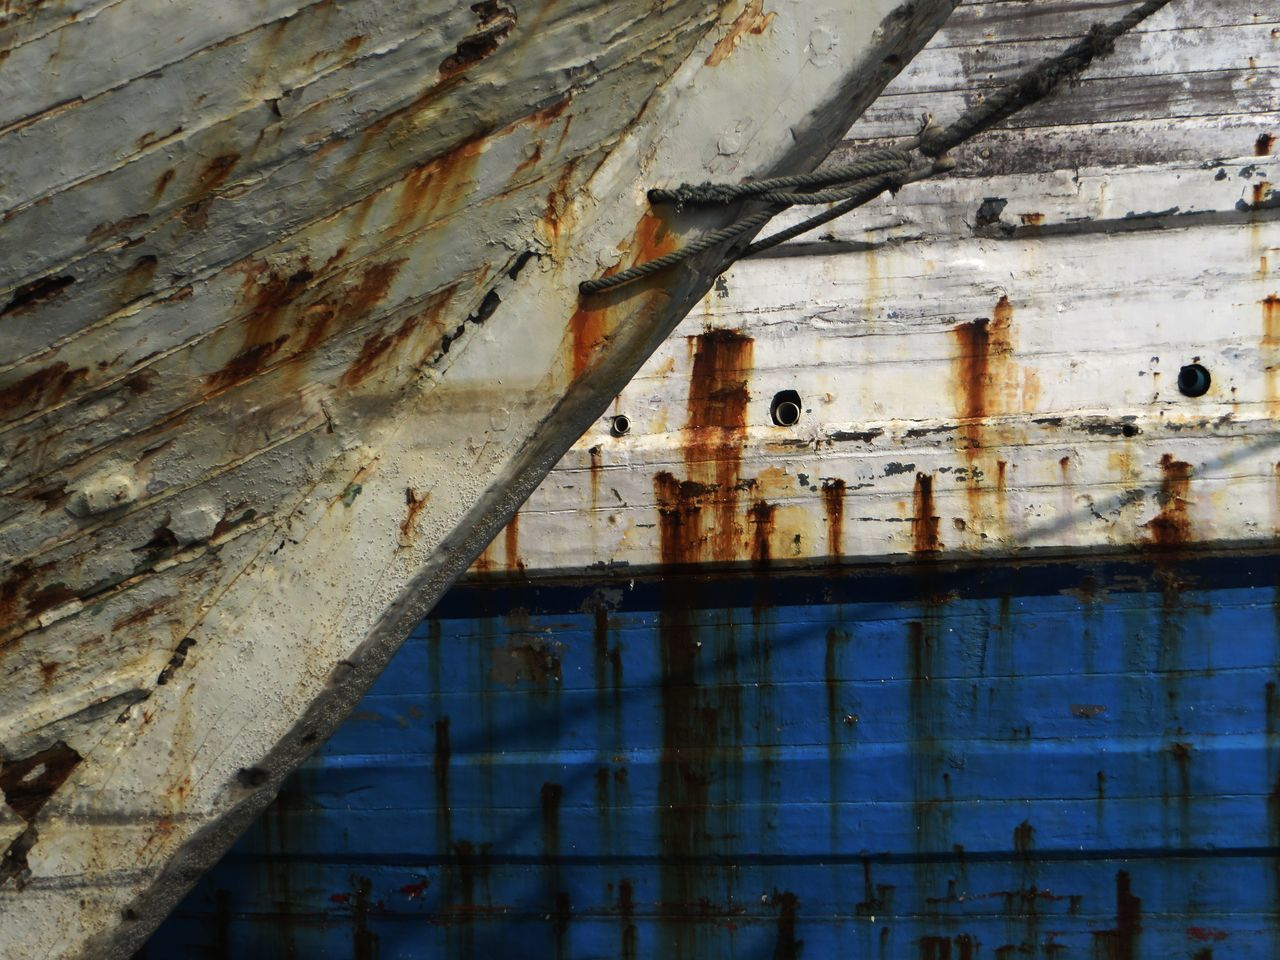 Abandoned Architecture Building Exterior Built Structure Composite Image Composition Damaged Day Multicolor No People Outdoors Port Schip Water